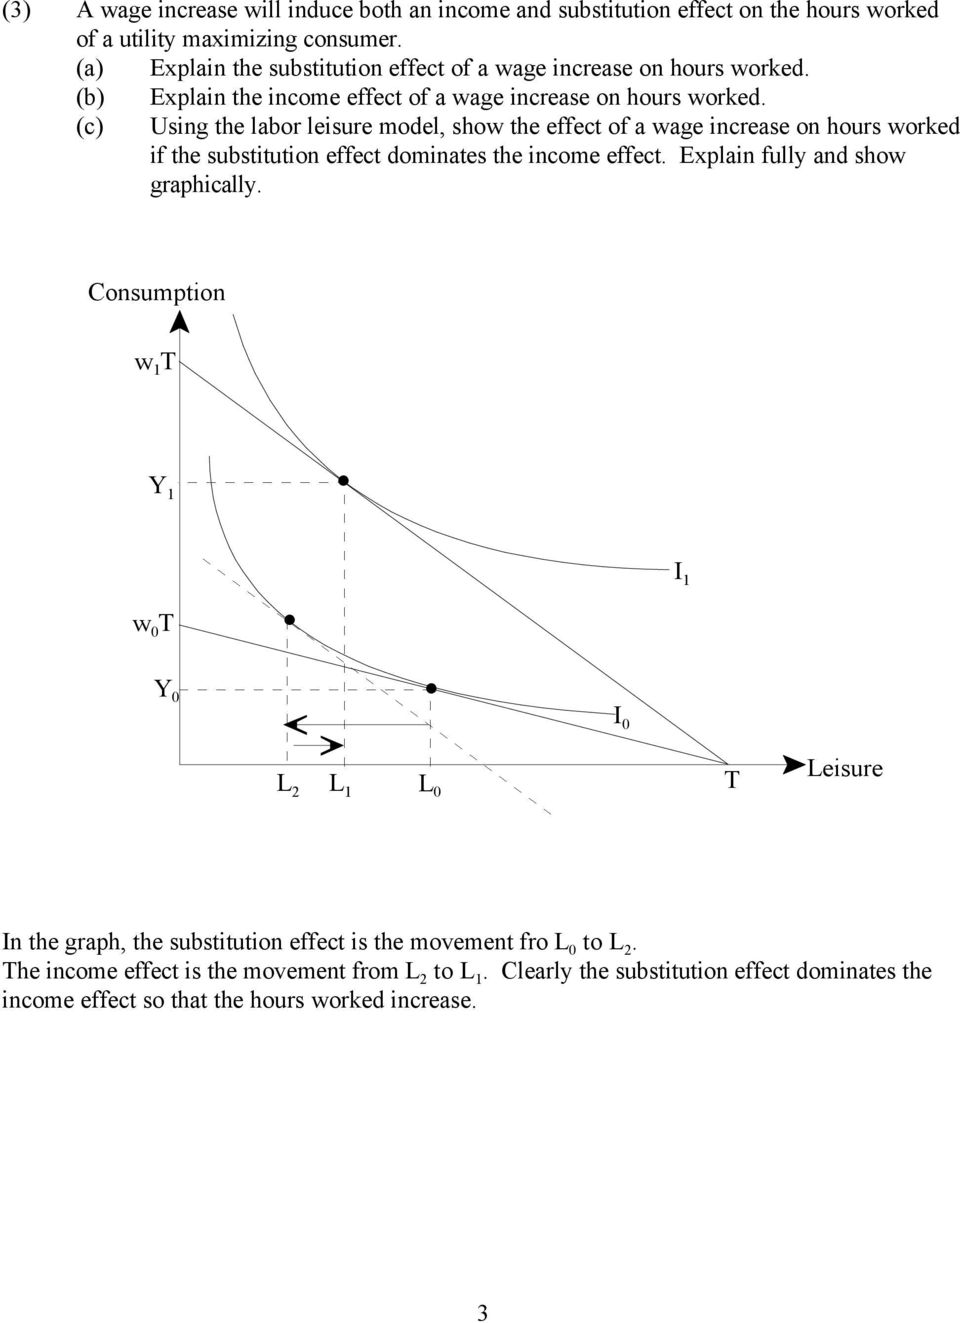 if the substitution effect dominates the income effect Explain fully and show graphically Consumption w 1 T Y 1 w 0 T I 1 Y 0 I 0 L 2 L 1 L 0 T Leisure In the graph, the